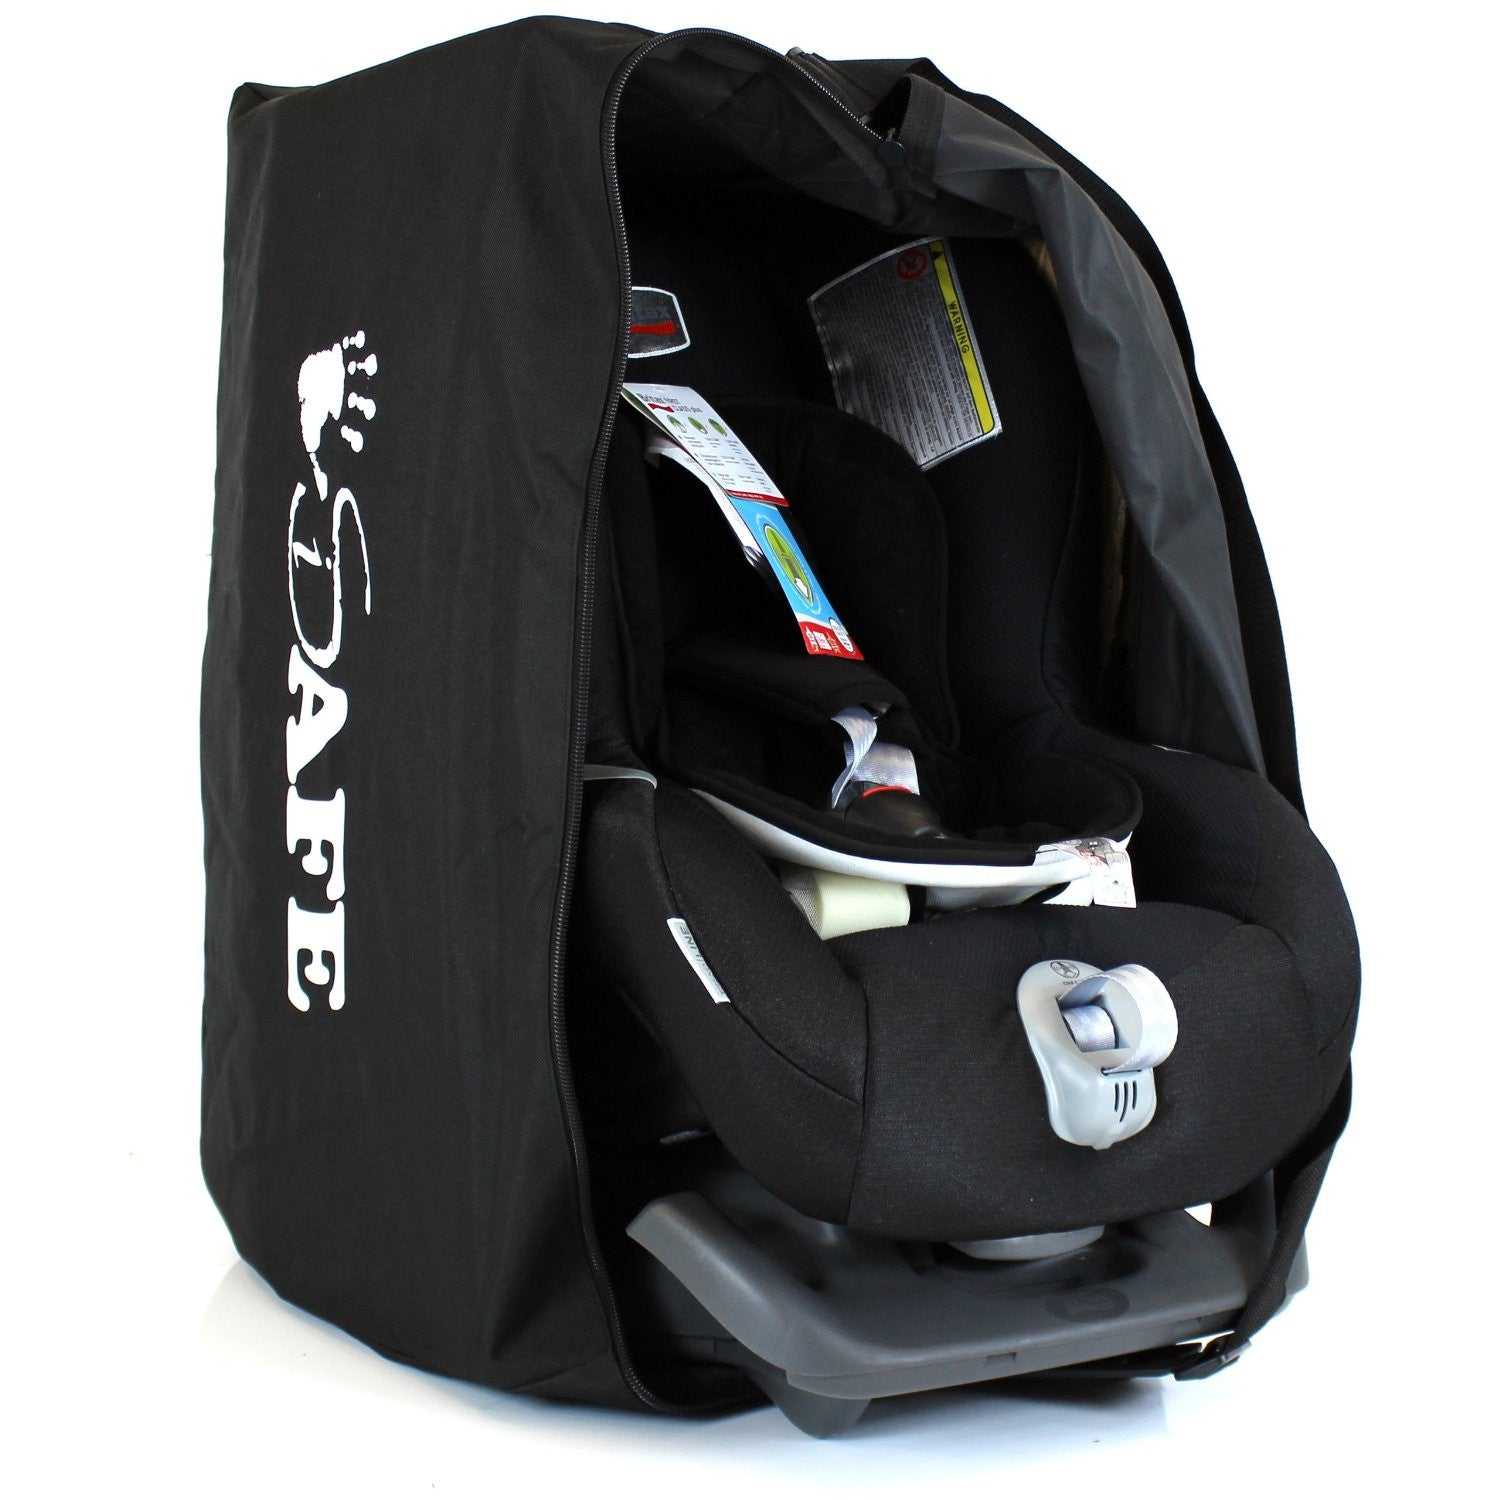 ISafe Universal Carseat Travel Storage Bag For OBaby Group 1 2 3 High